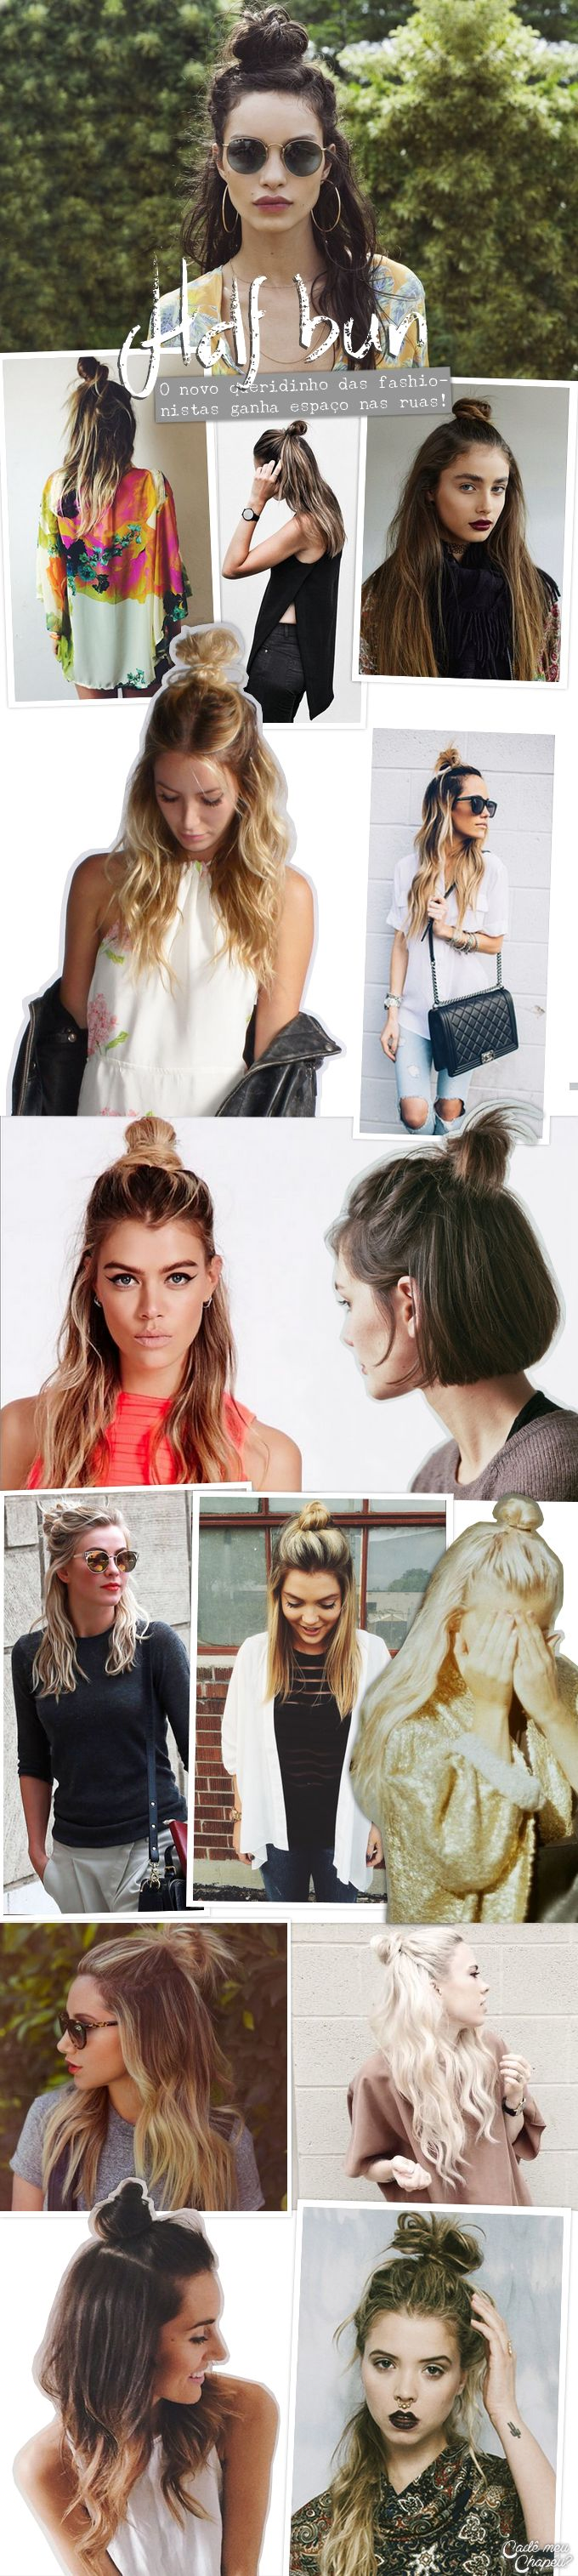 Penteado | Hairdo | Half Bun | Half Up Top Knot |